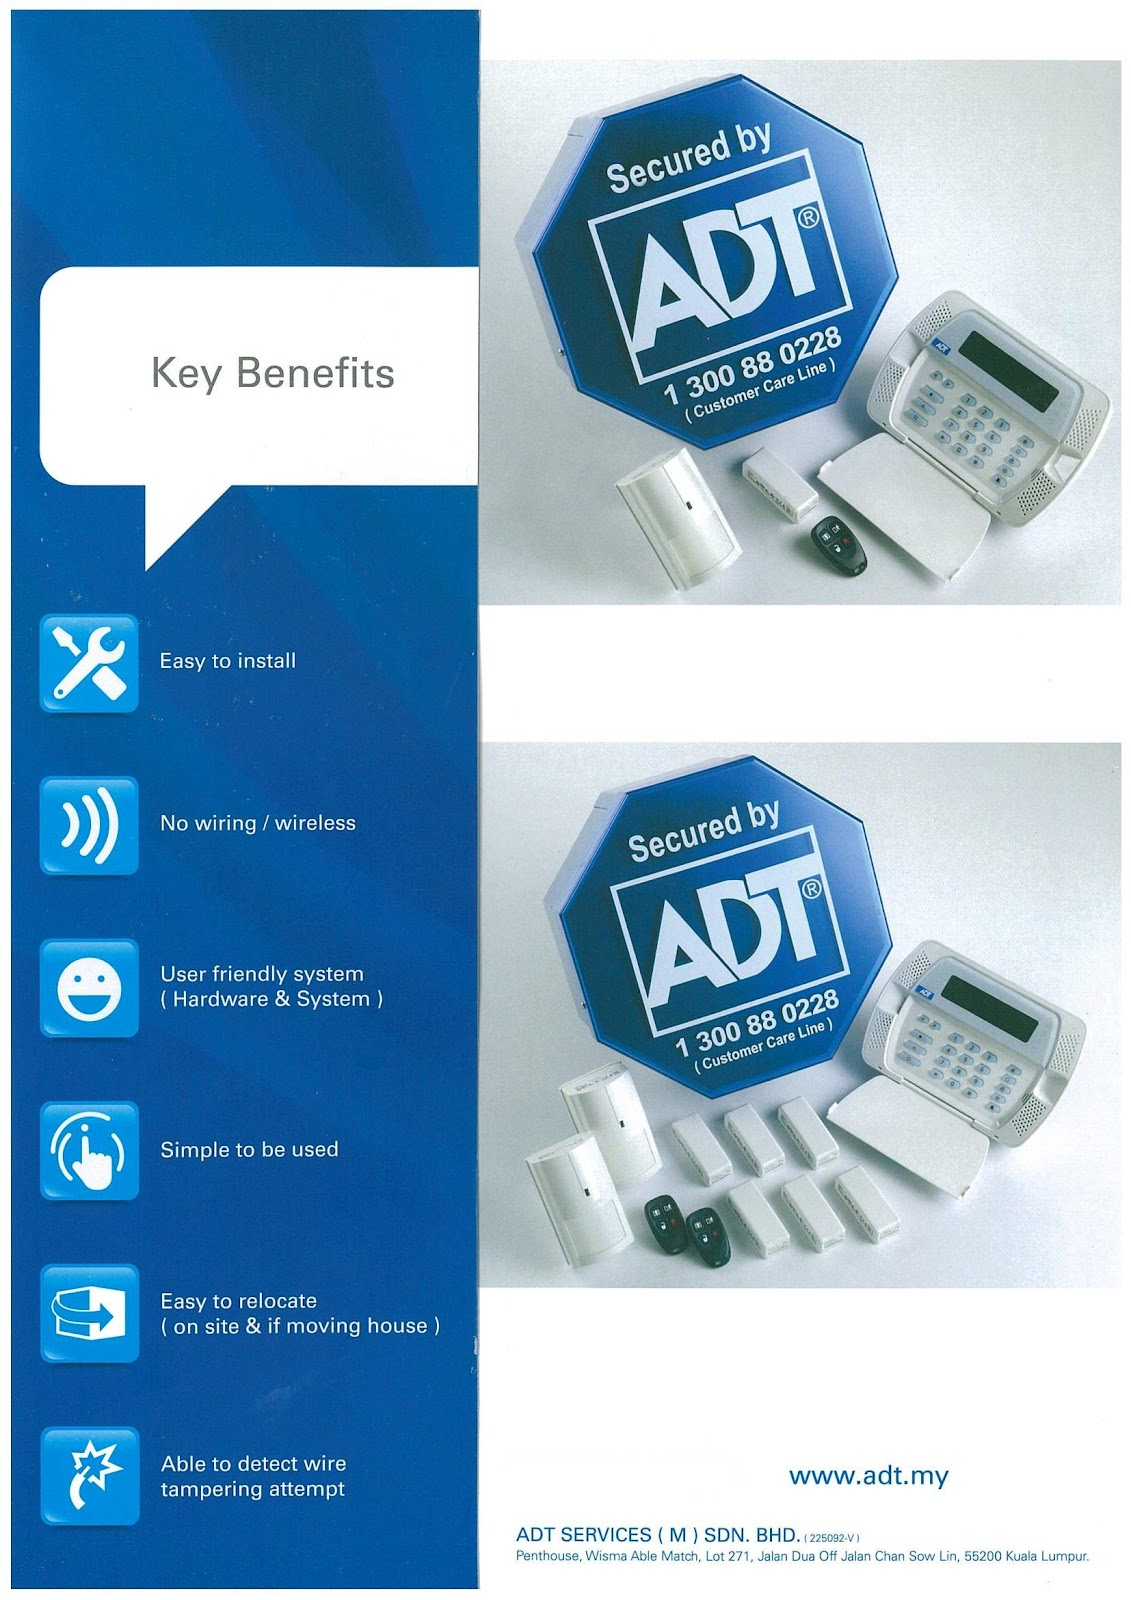 ADT Home & Business Alarm System